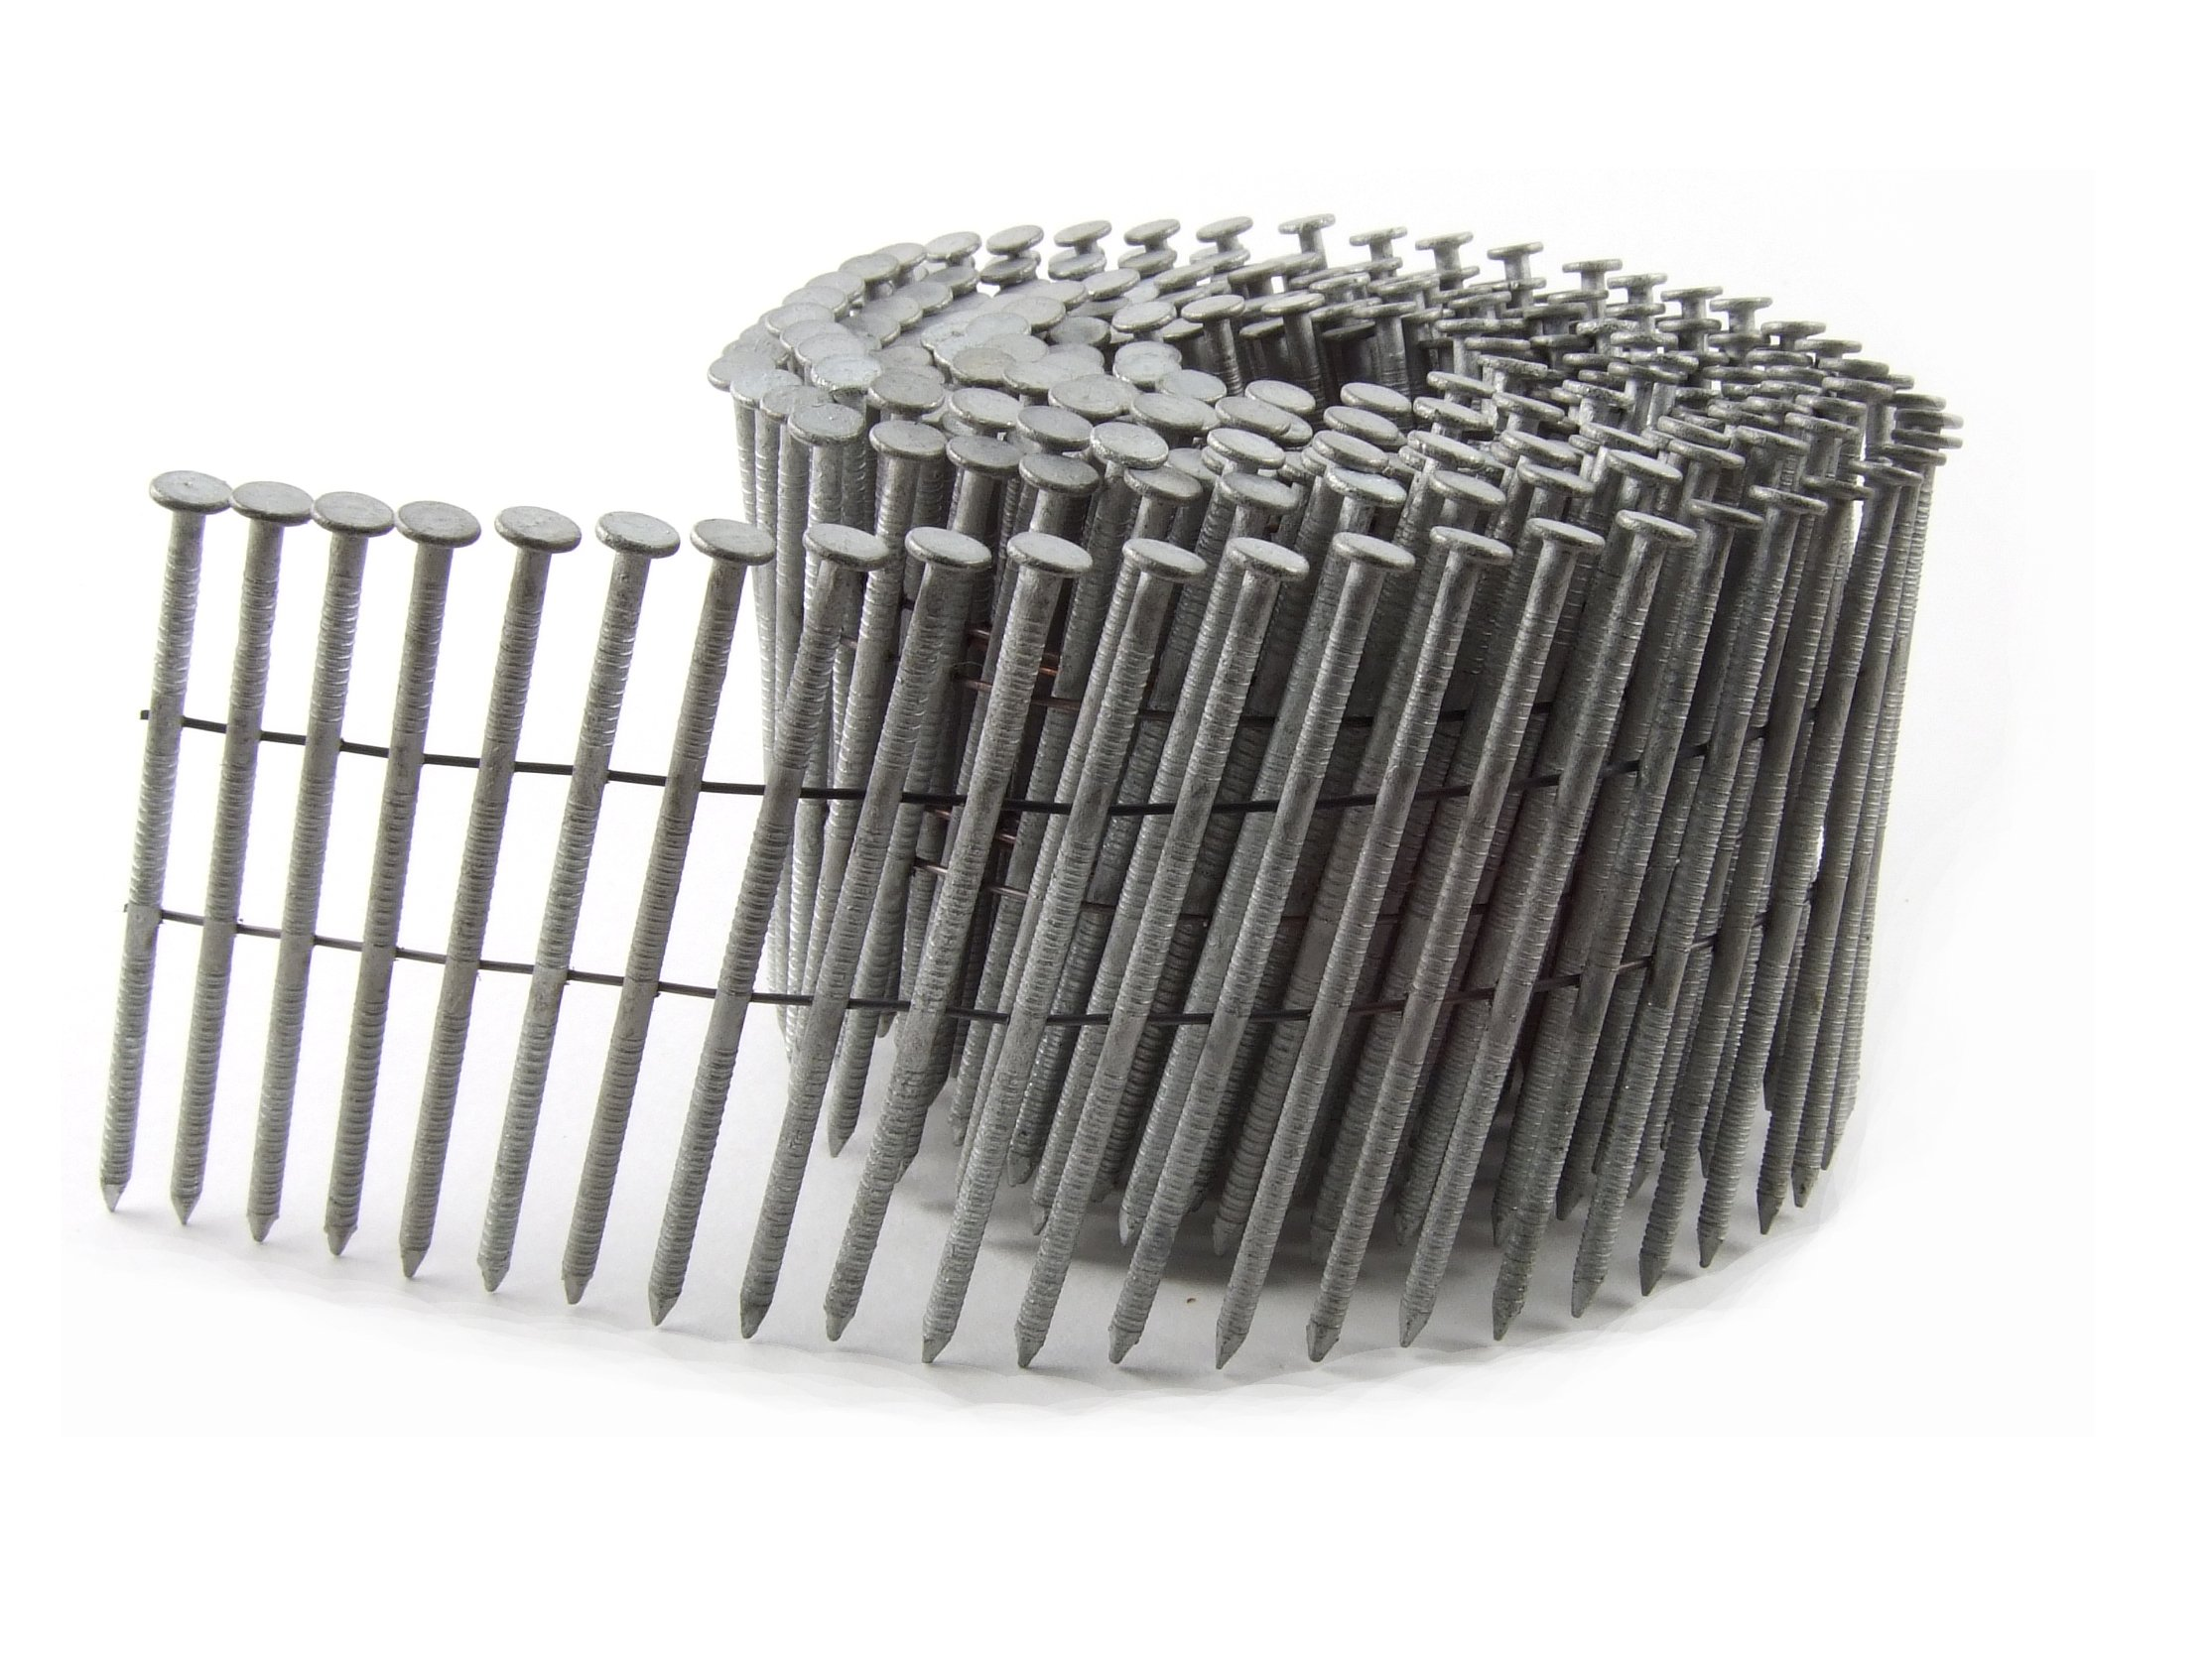 B&C Eagle 314X120HDRC Round Head 3-1/4-Inch x .120 x 15 Degree Hot Dip Galvanized Ring Shank Wire Collated Coil Framing Nails (2,500 per box)